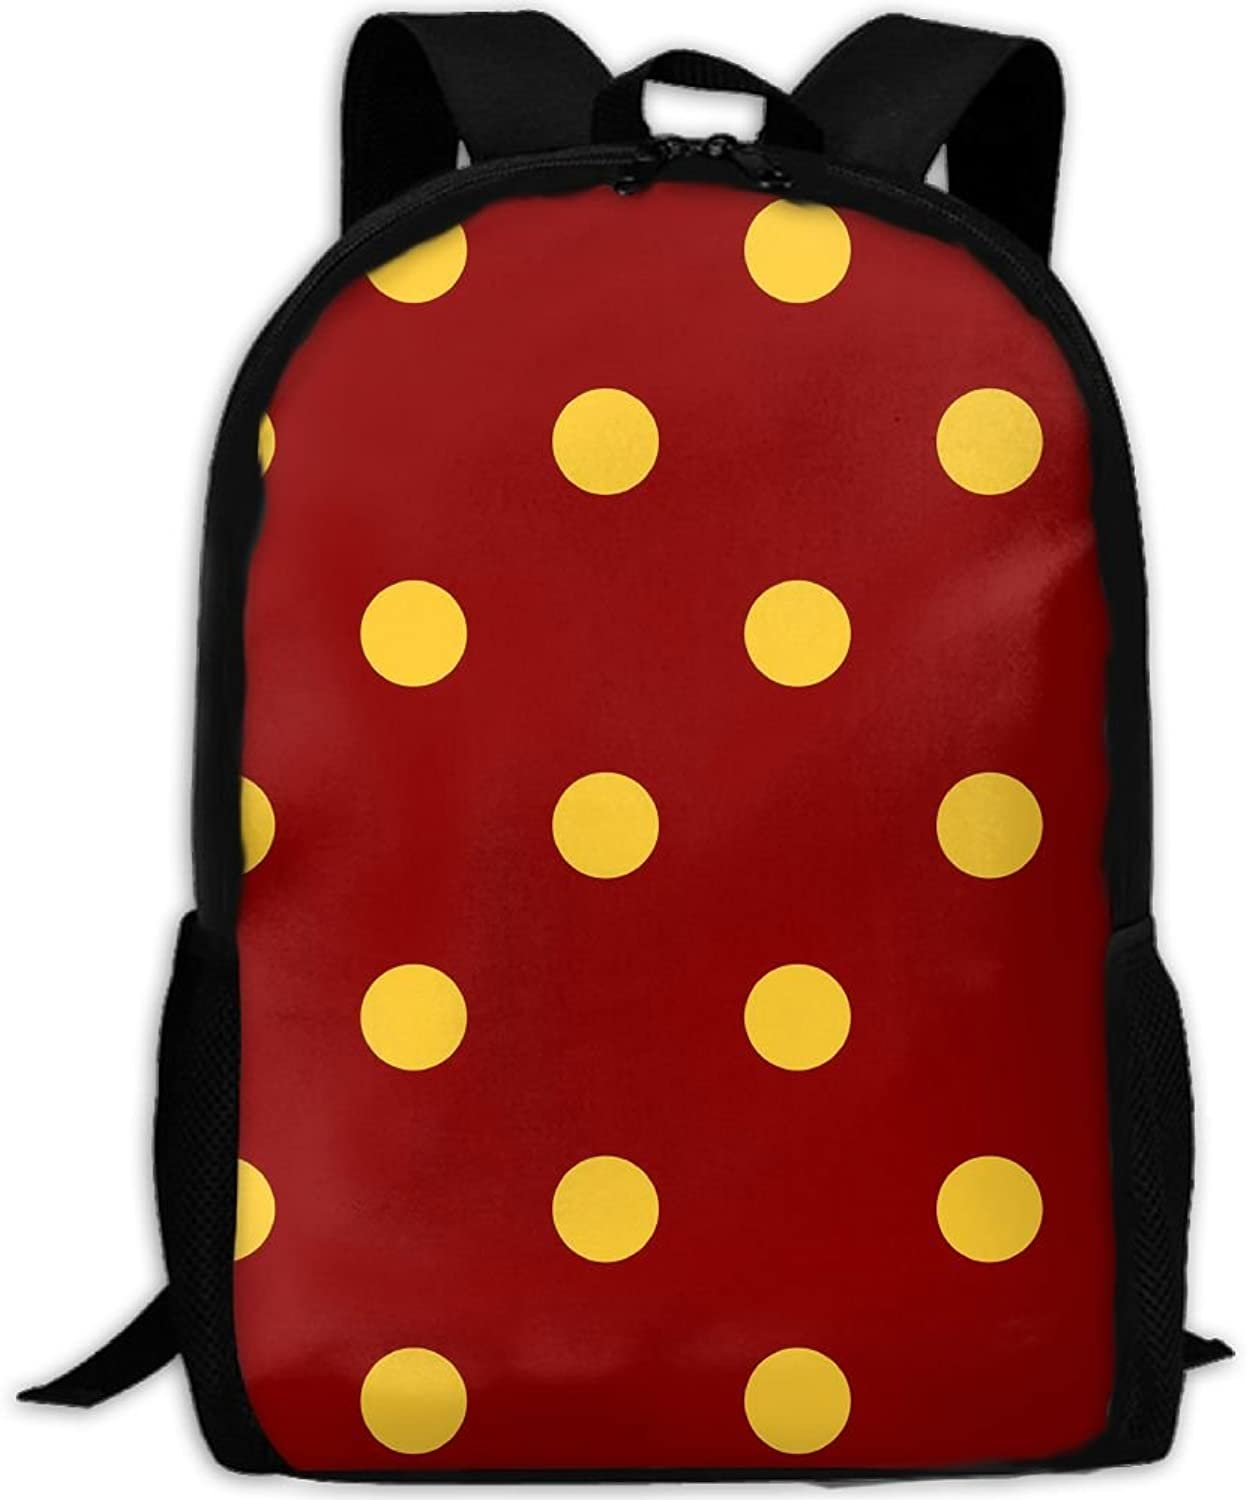 Backpack Laptop Travel Hiking School Bags Red Yellow Dots Daypack Shoulder Bag